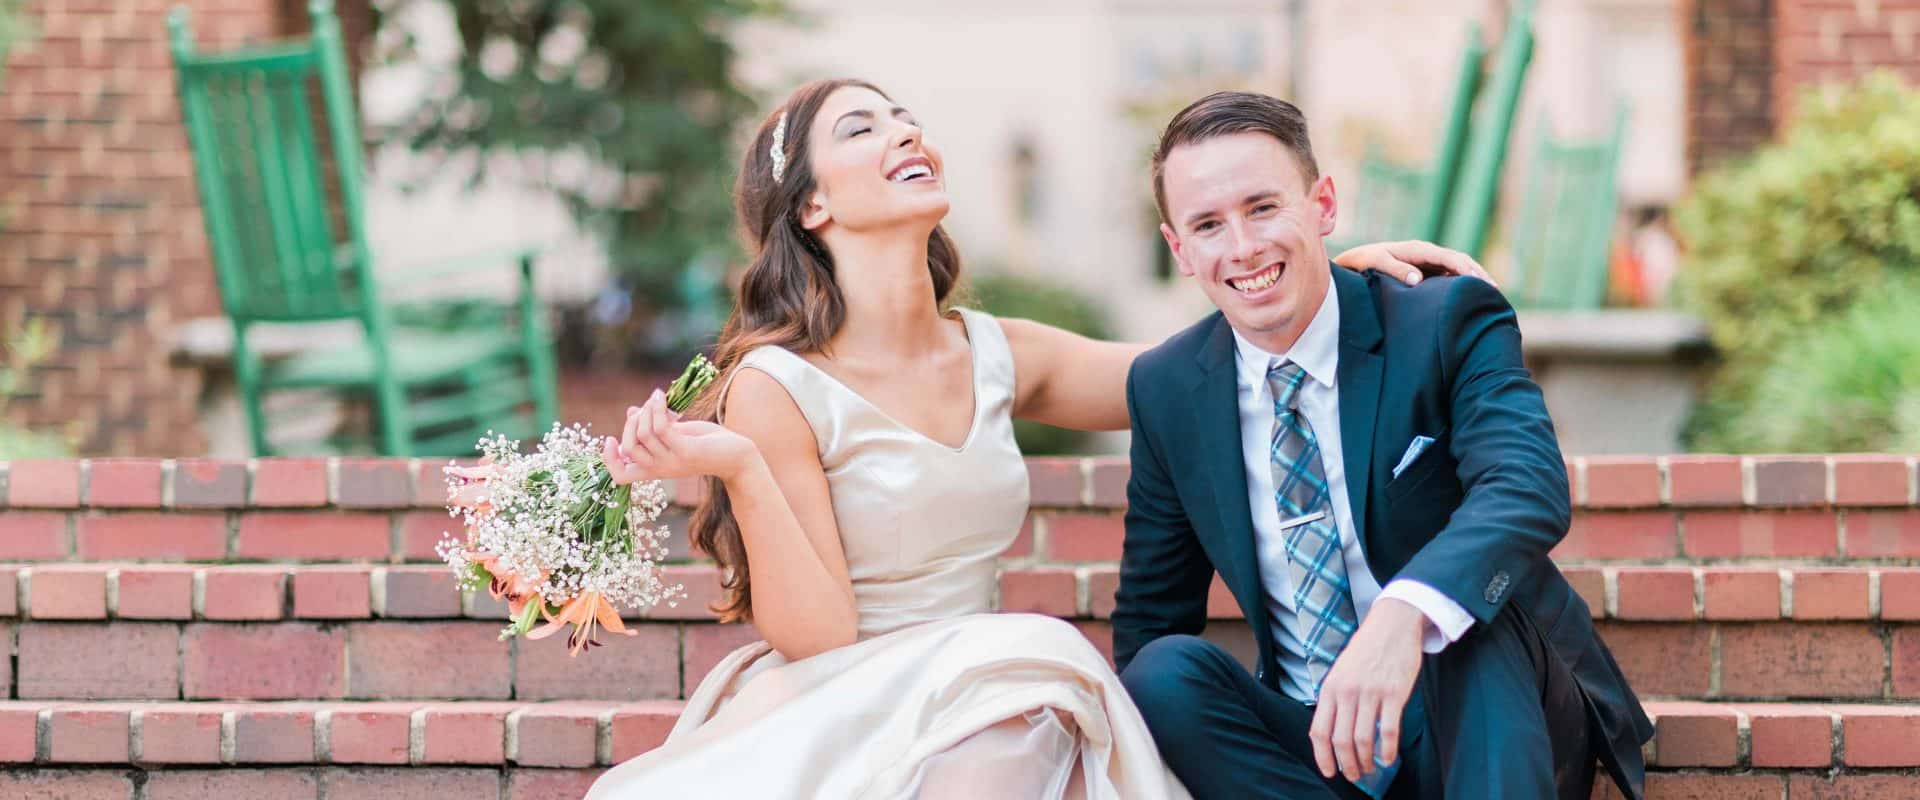 A bride and Groom after being married on campus.